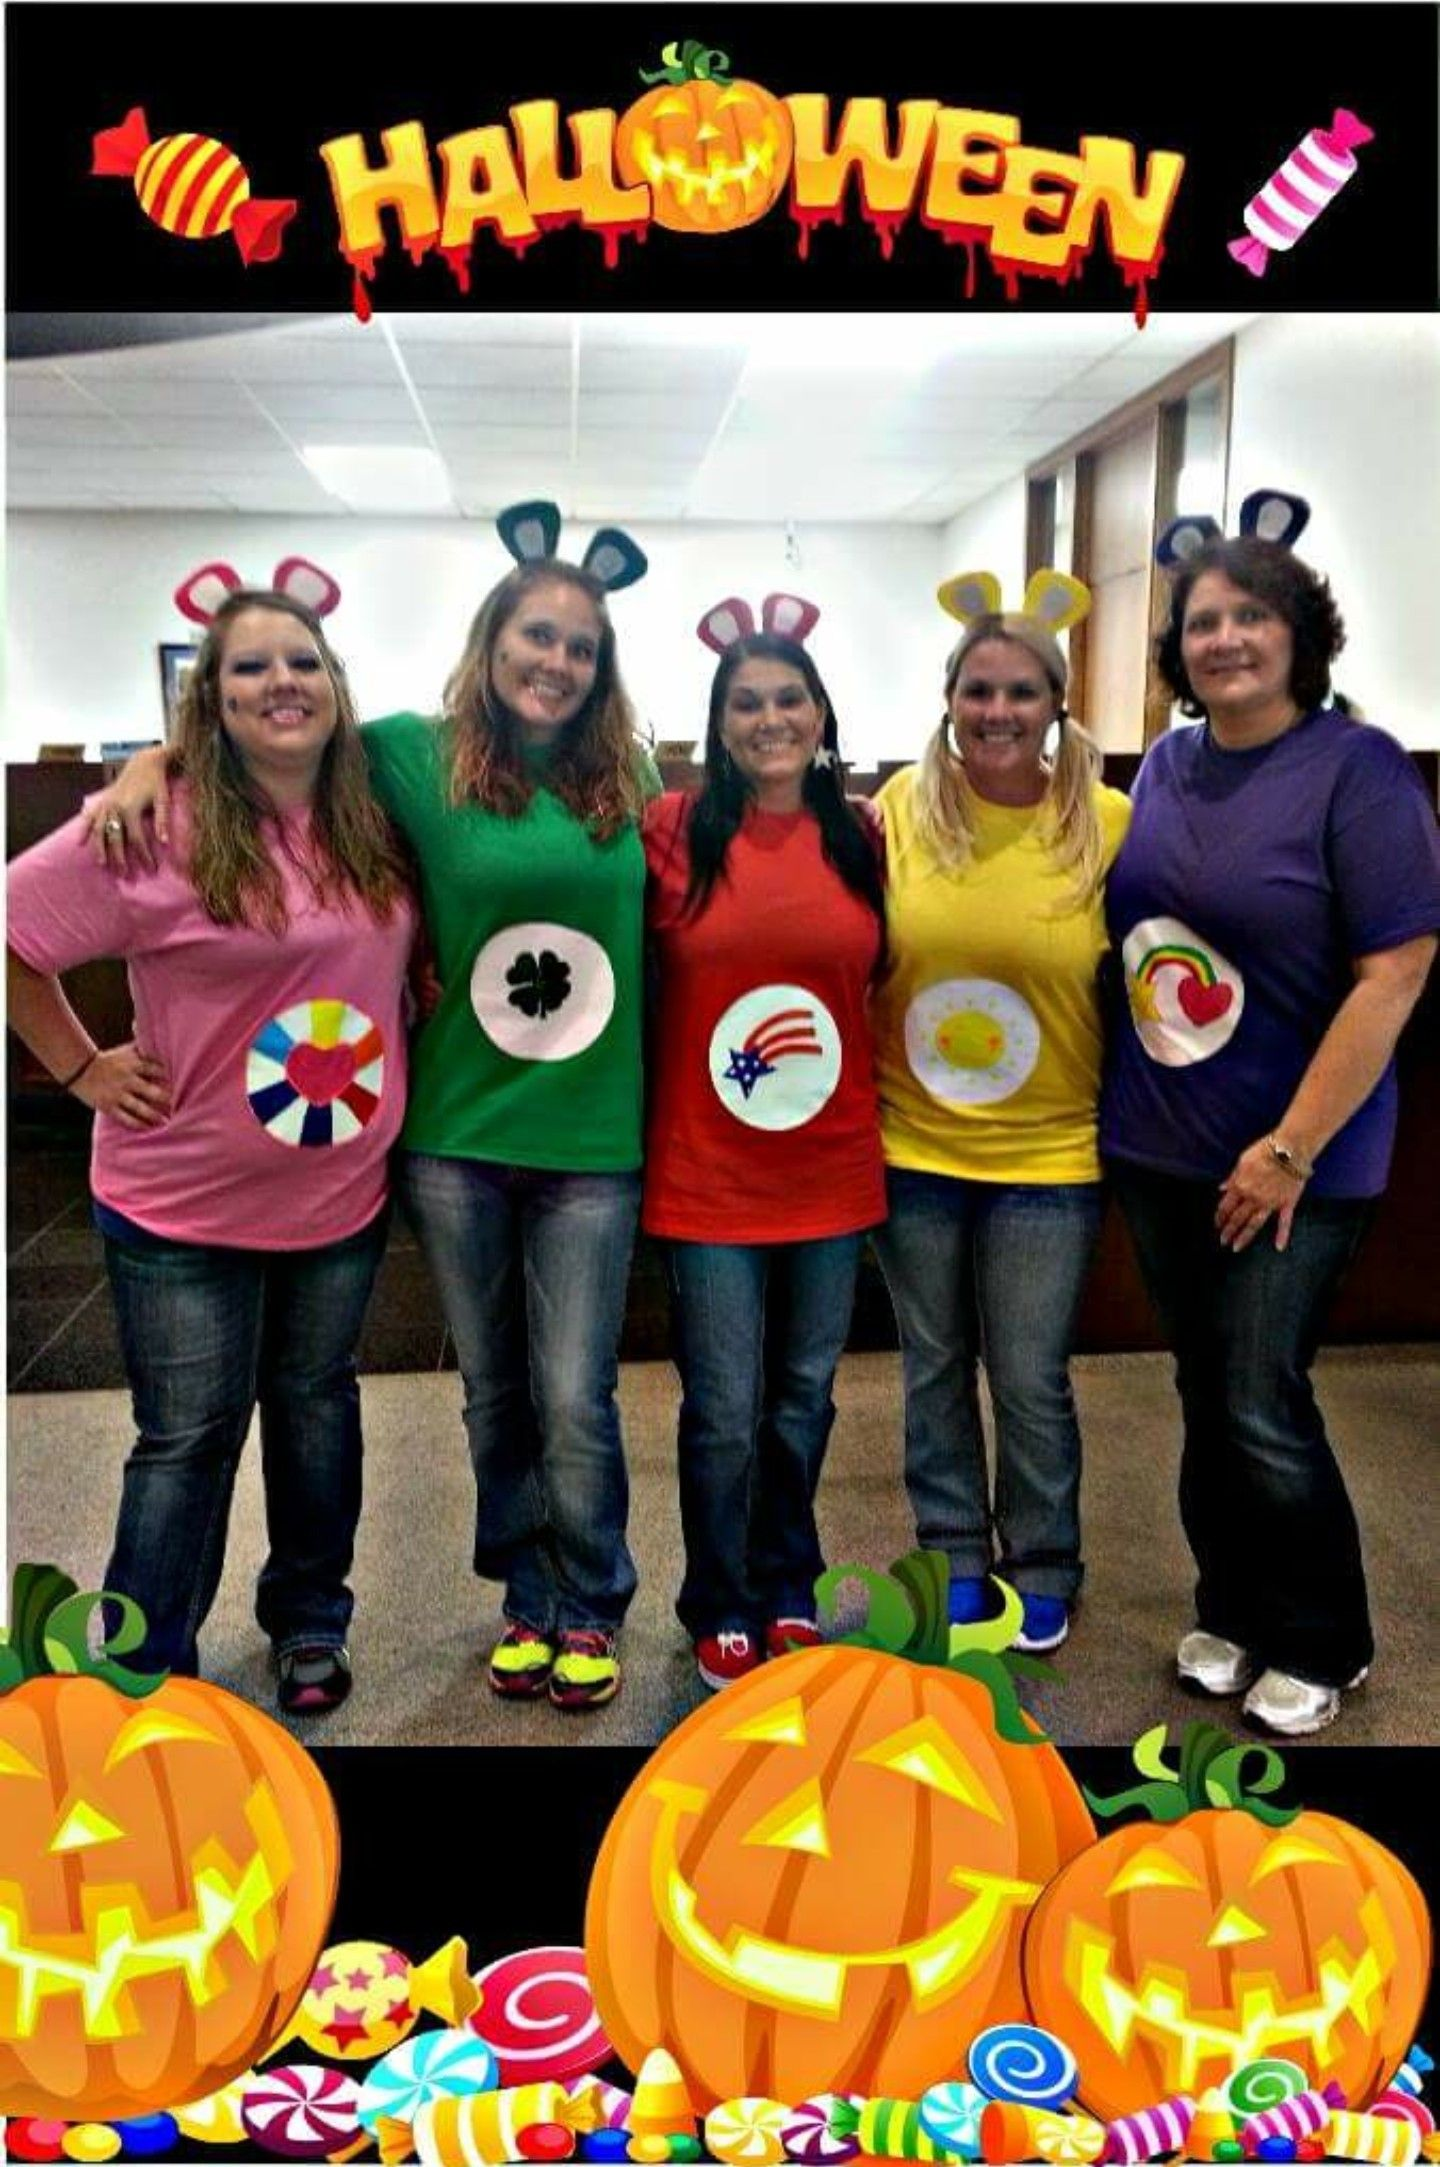 Group Halloween costumes, DIY Carebear for large group